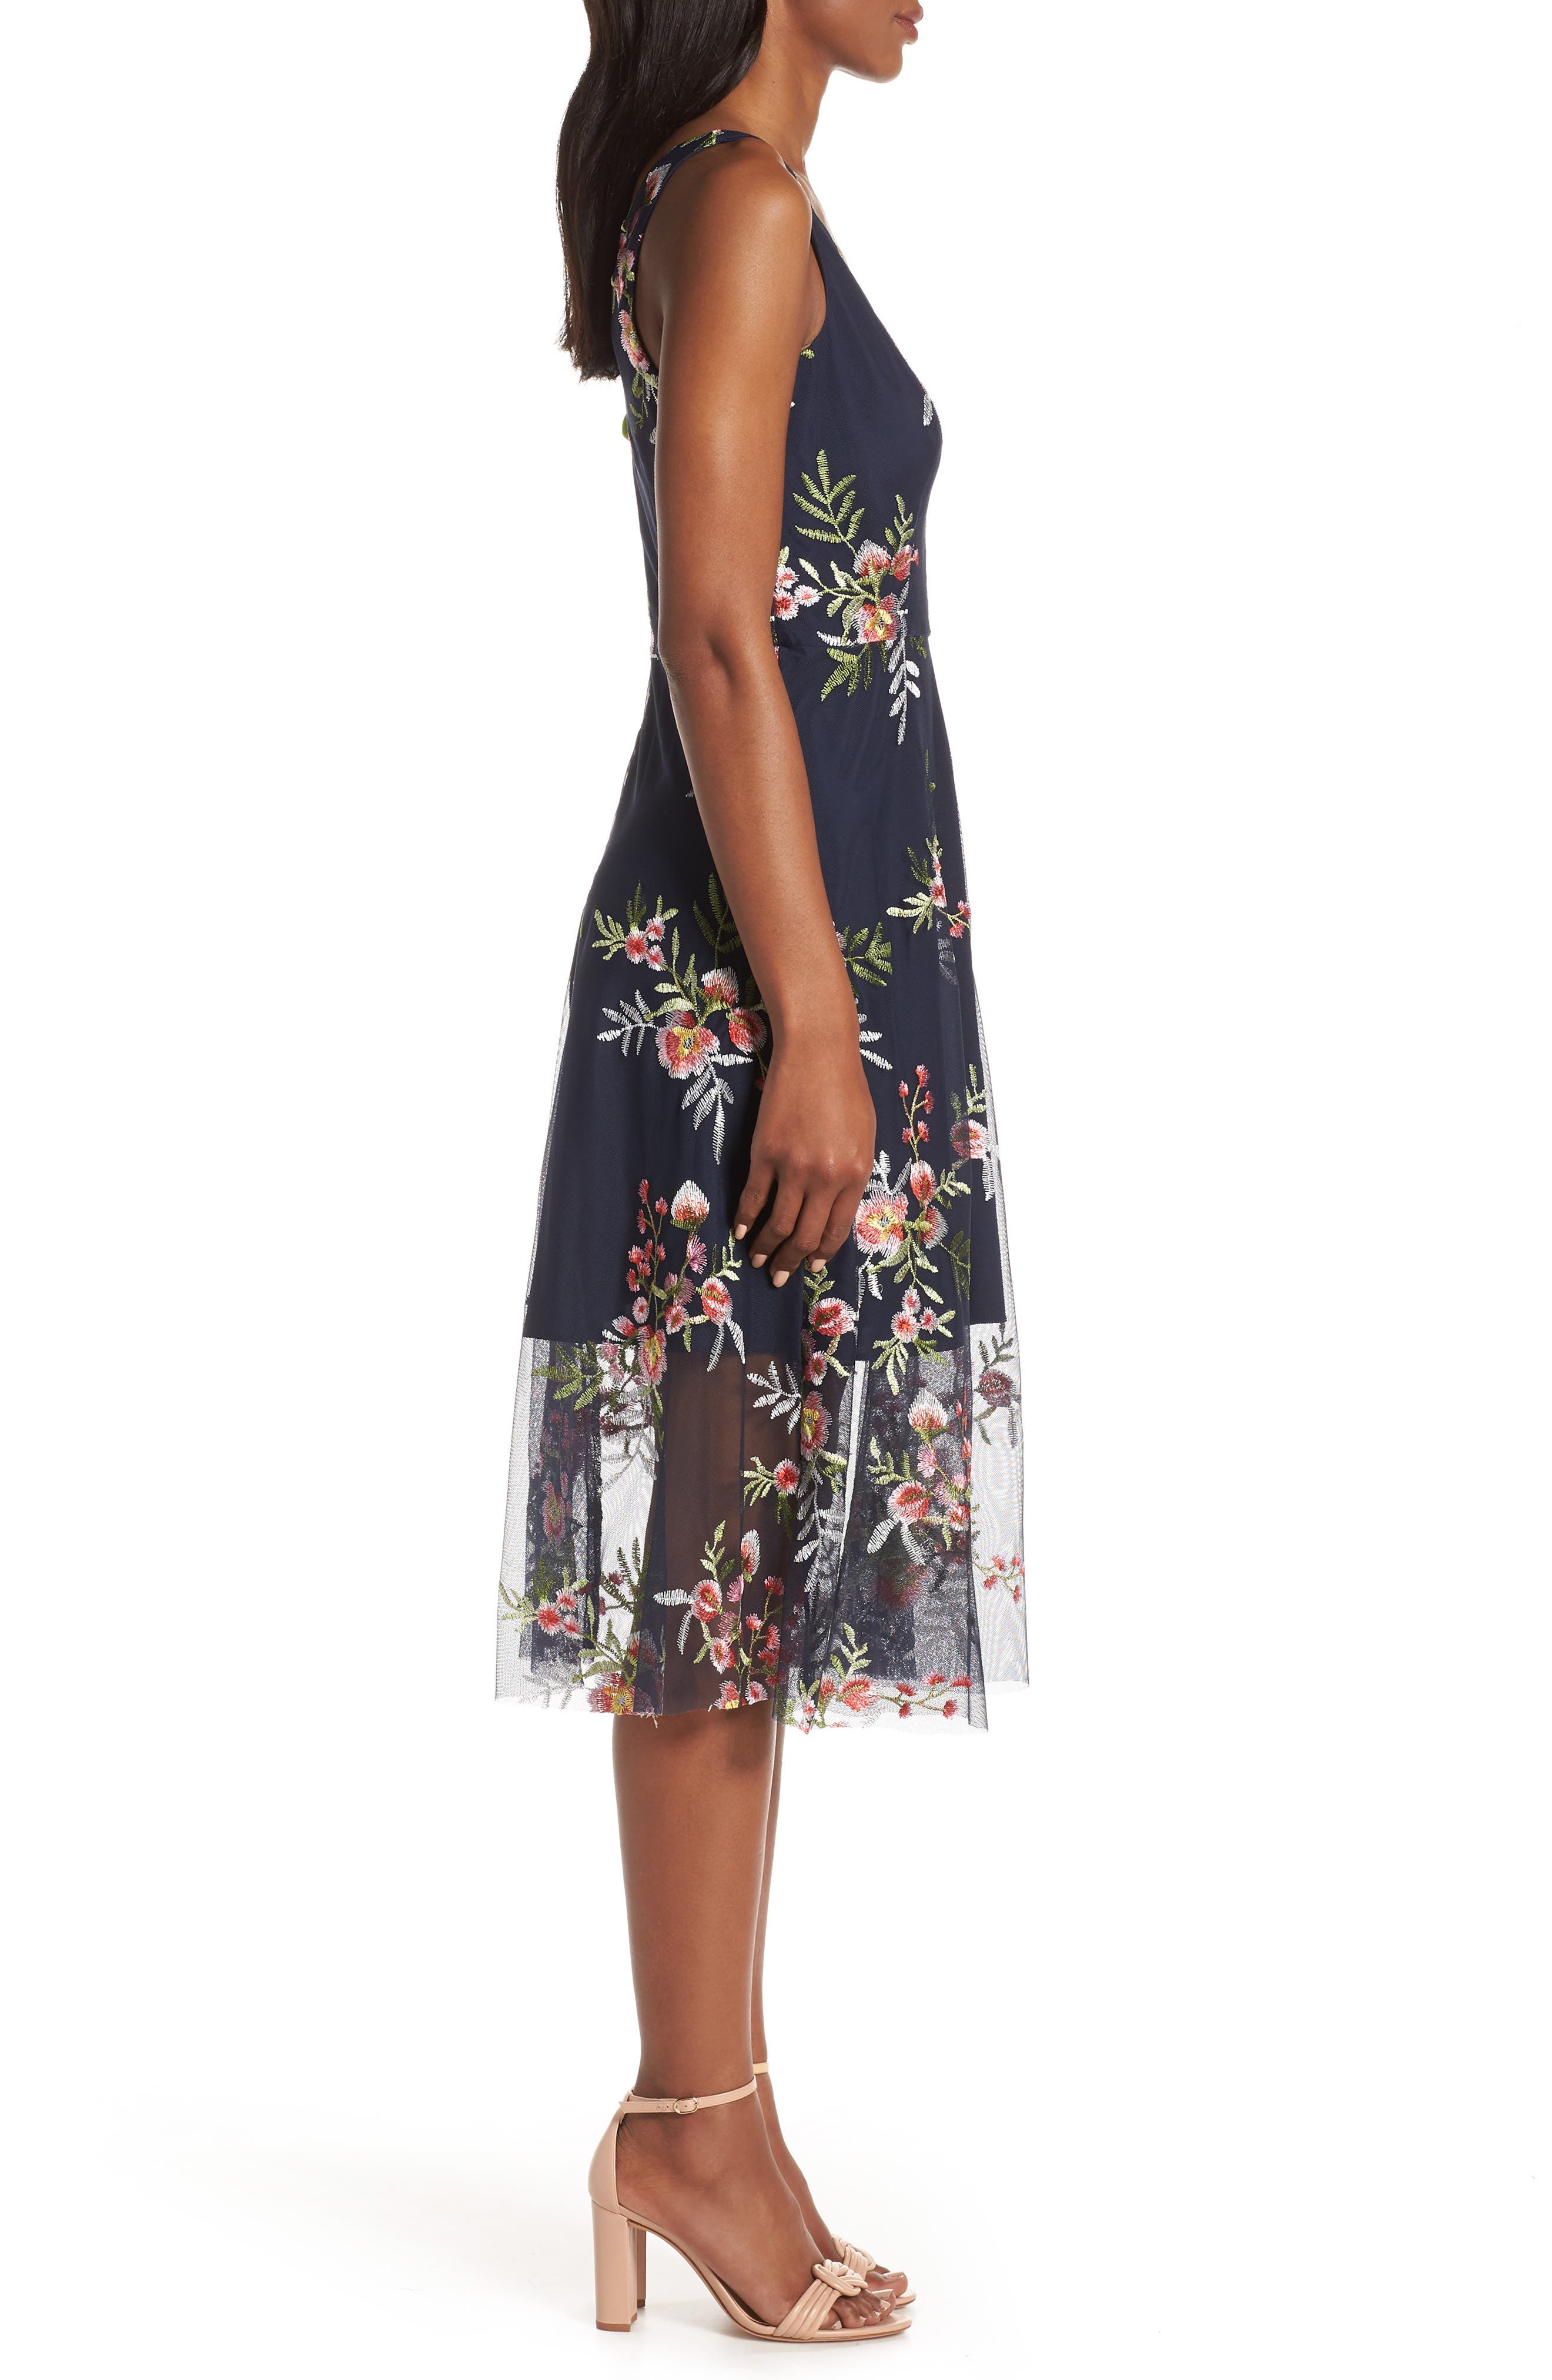 VINCE CAMUTO, Floral Embroidered Mesh Midi Dress, Alternate thumbnail 5, color, NAVY/ MULTI